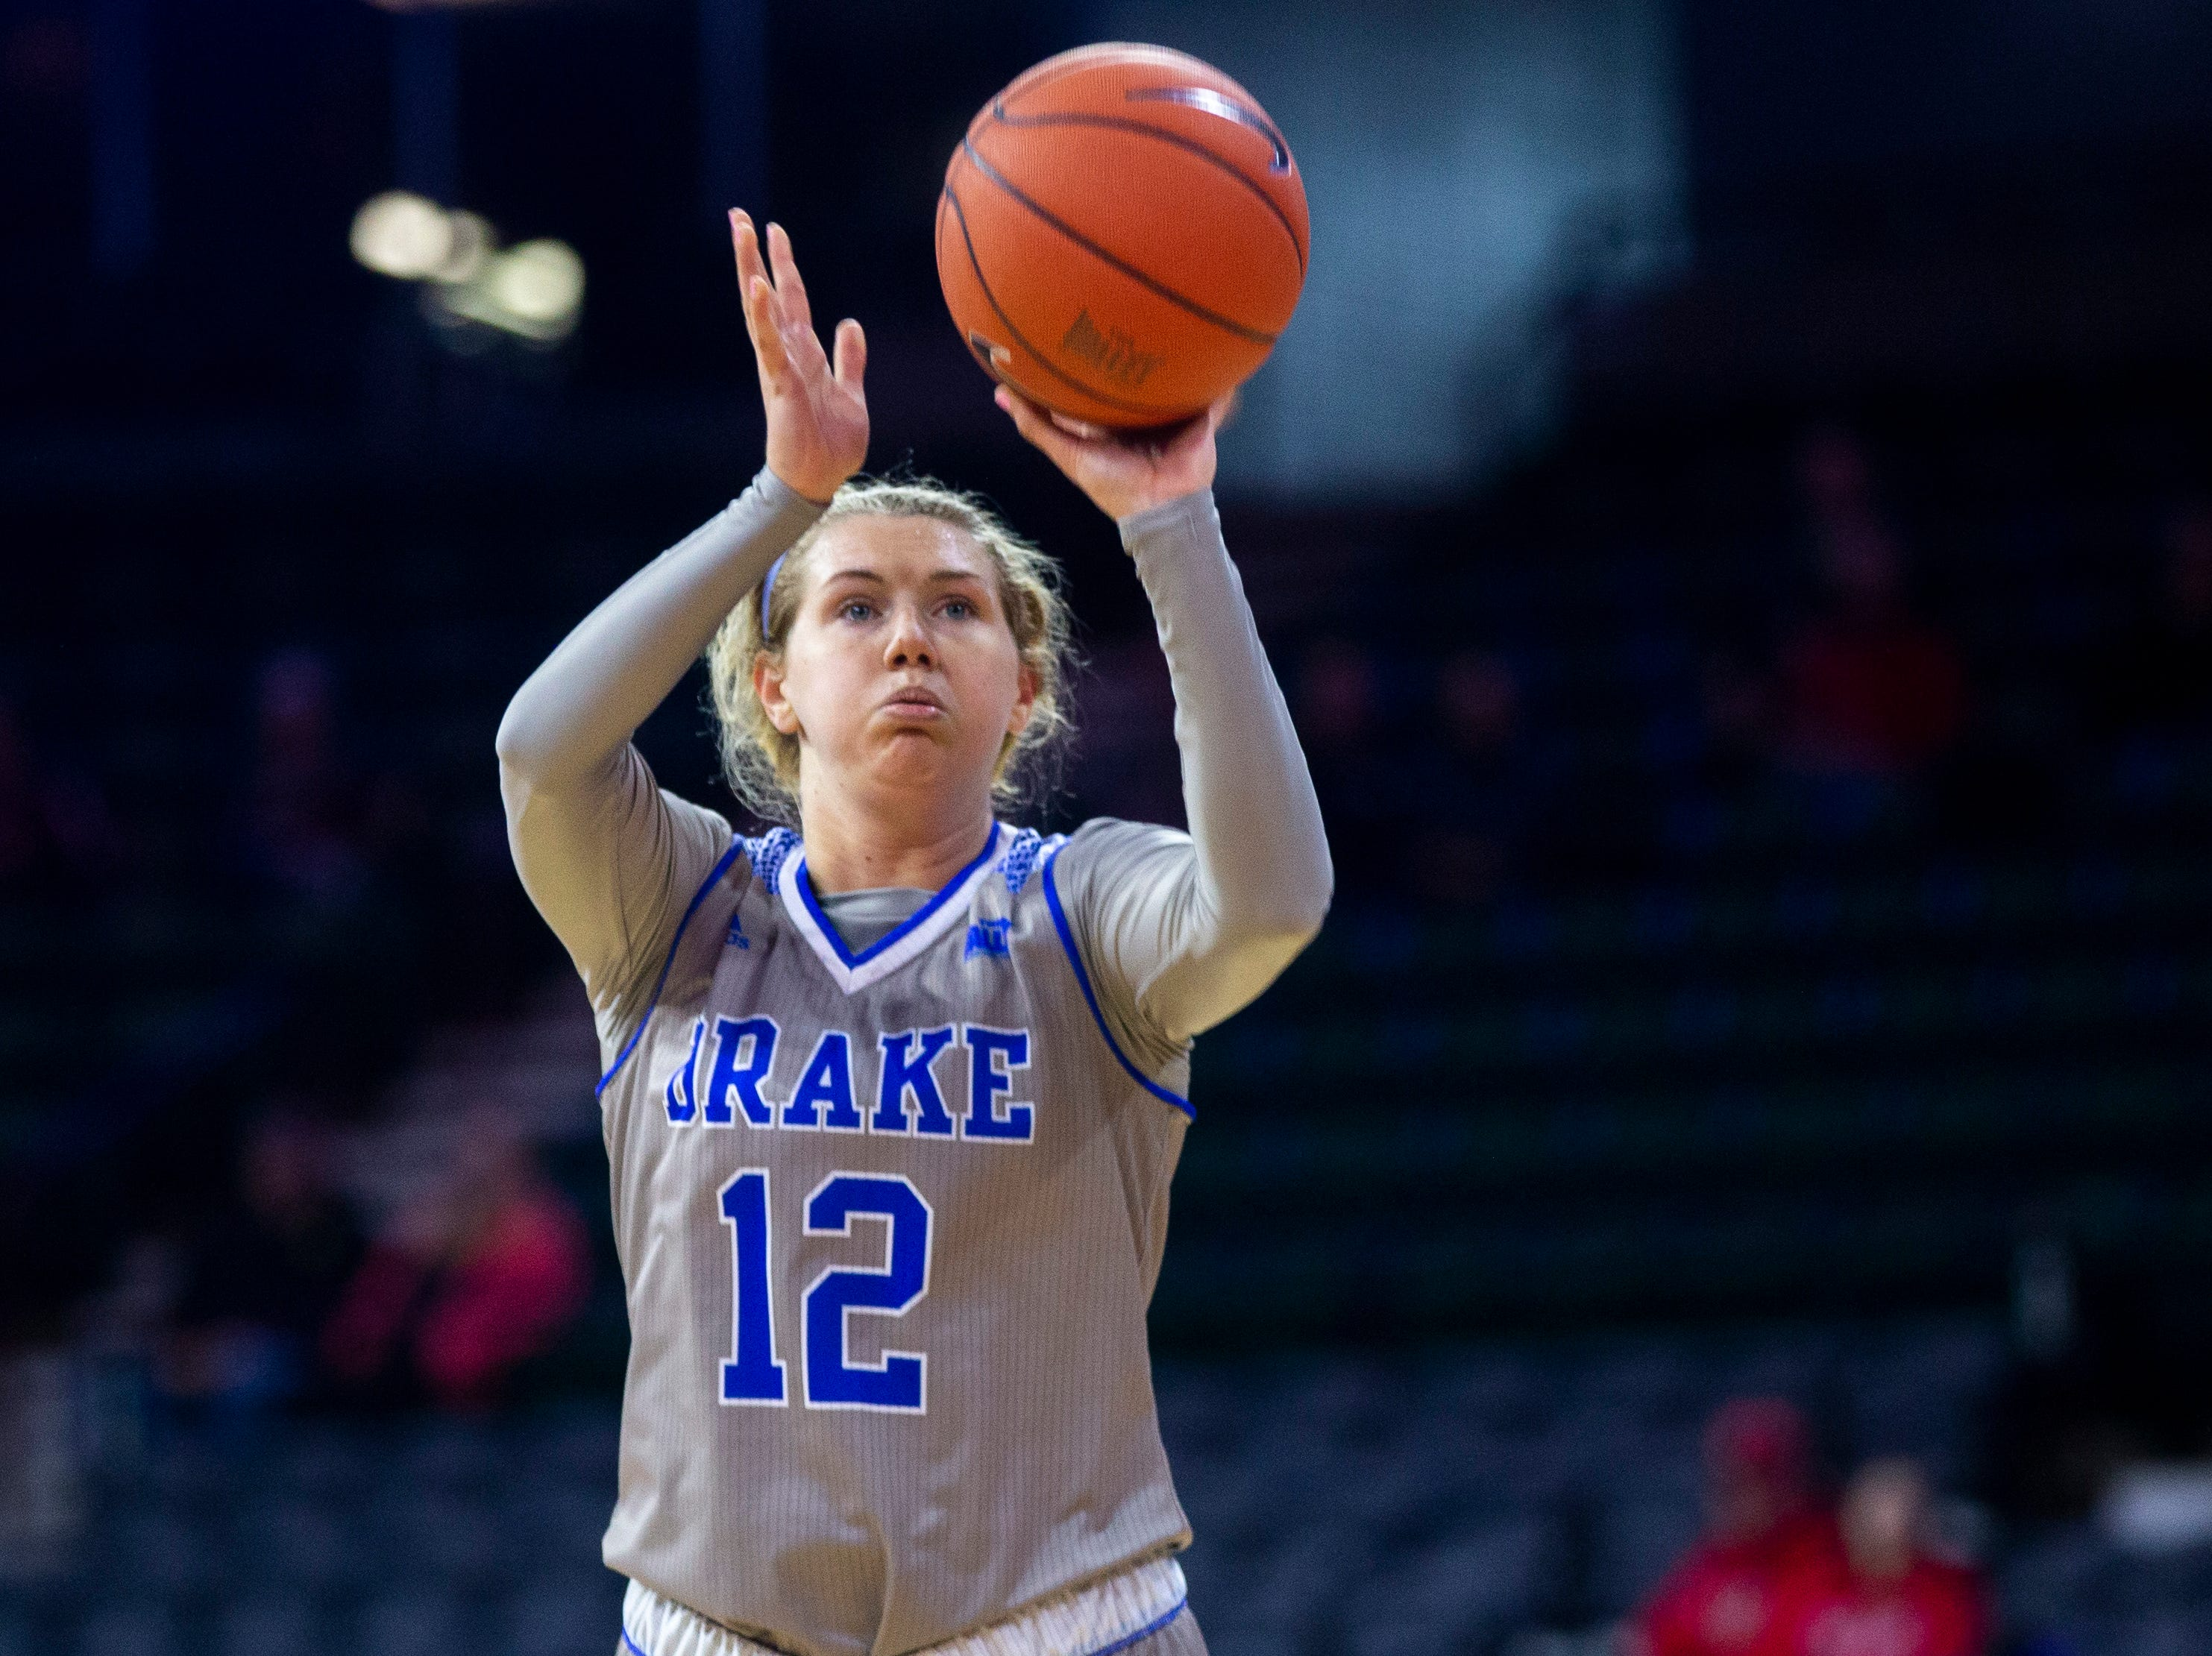 Drake's Brenni Rose (12) shoots a basket during a NCAA Missouri Valley Conference women's basketball quarterfinal tournament game, Friday, March 15, 2019, at the TaxSlayer Center in Moline, Illinois.